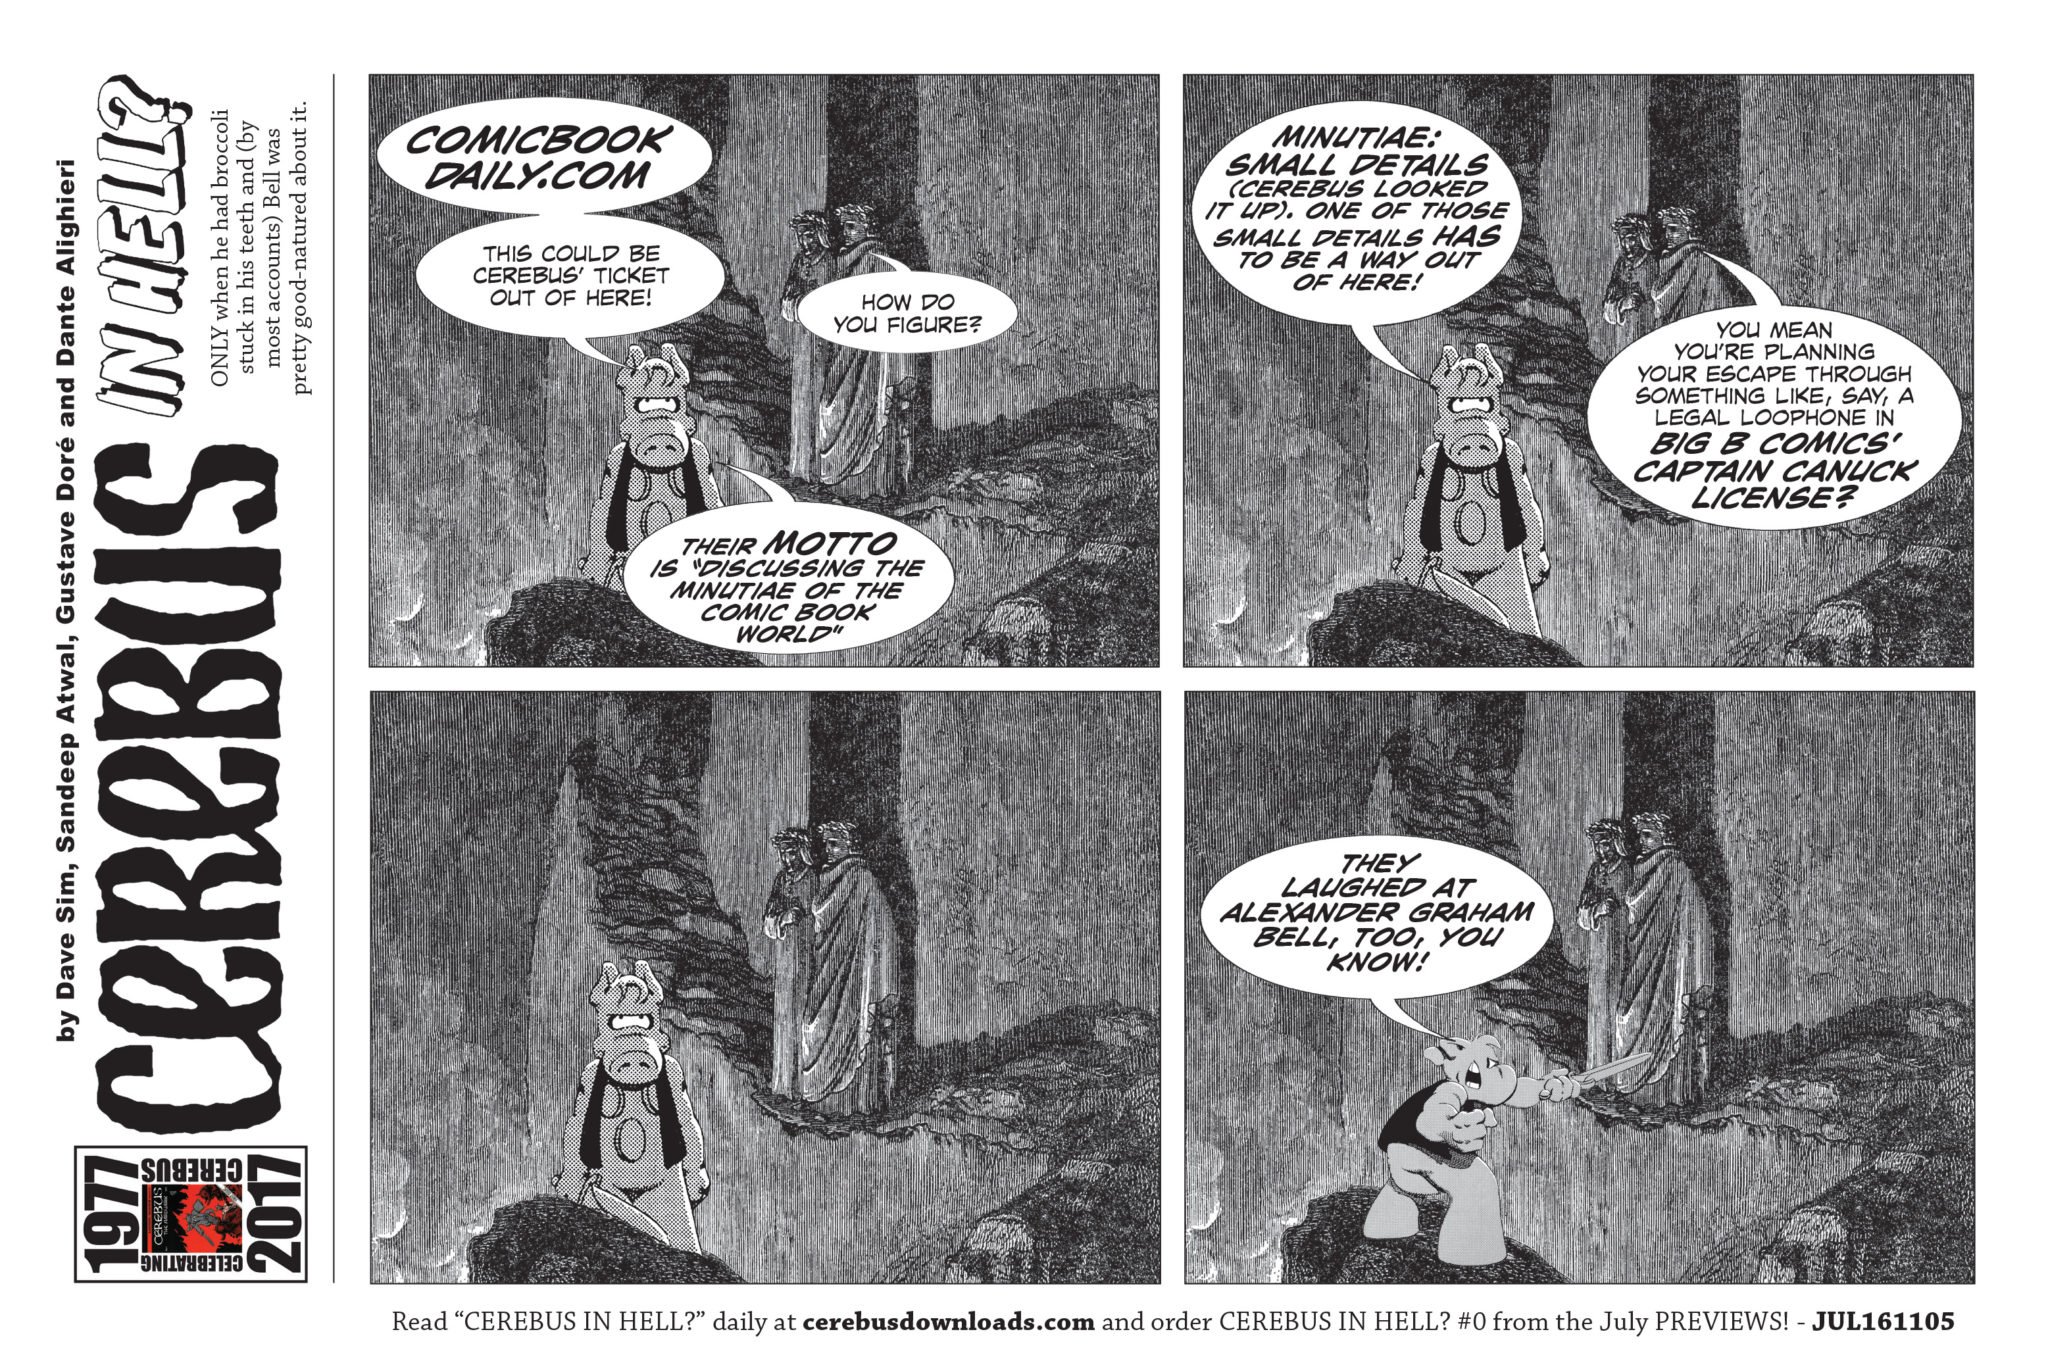 Cerebus In Hell - Comic Book Daily